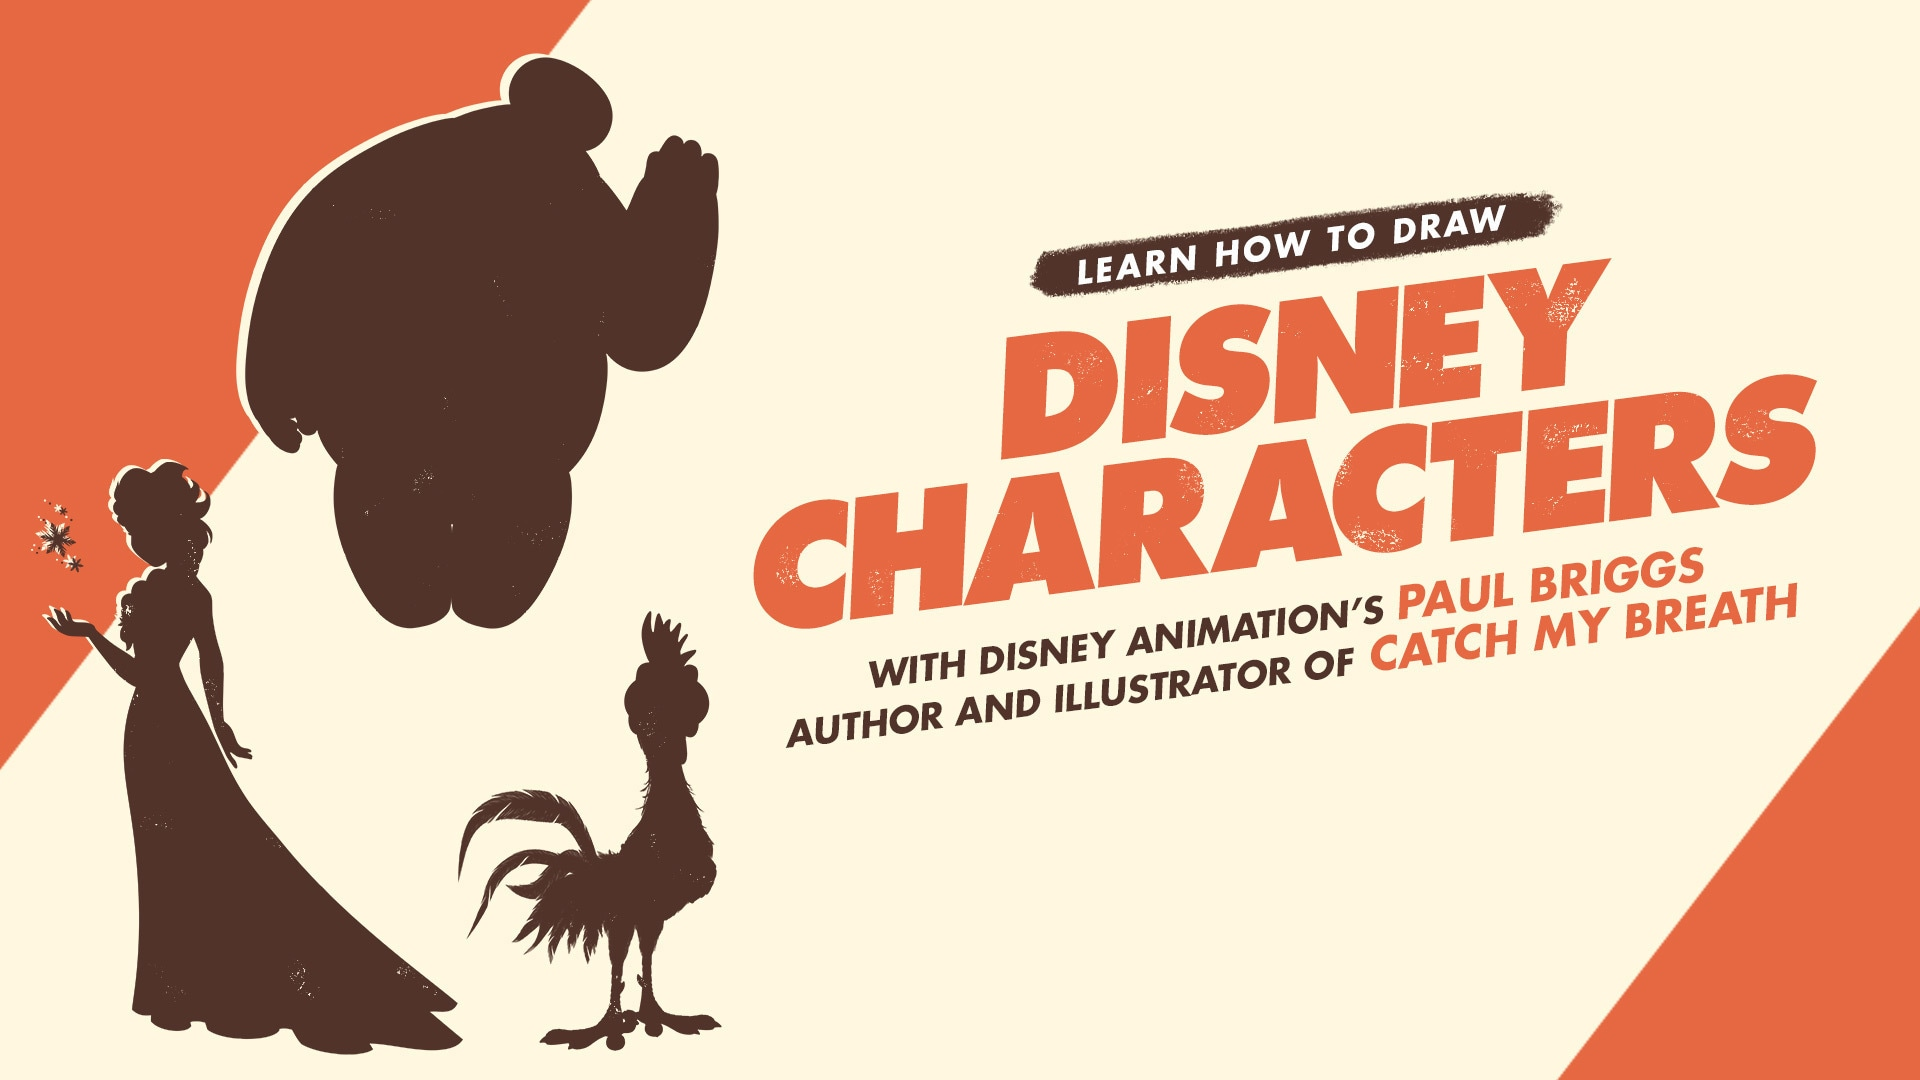 How to Draw Elsa & Baymax with Disney Animation's Paul Briggs